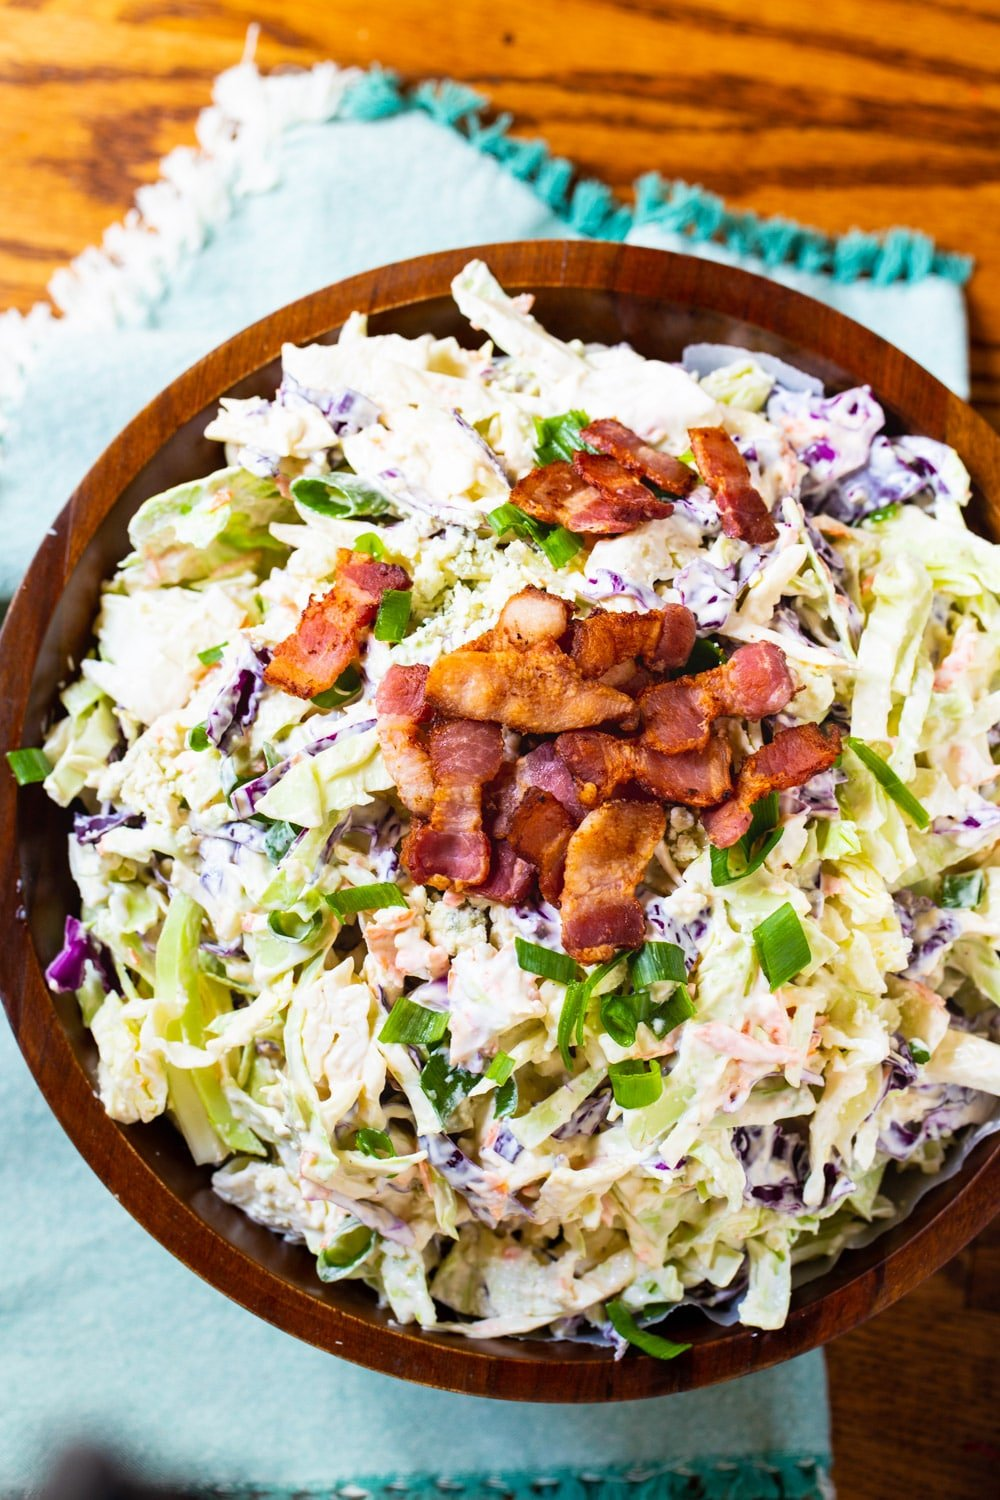 Coleslaw in wooden bowl with bacon crumbles on top.